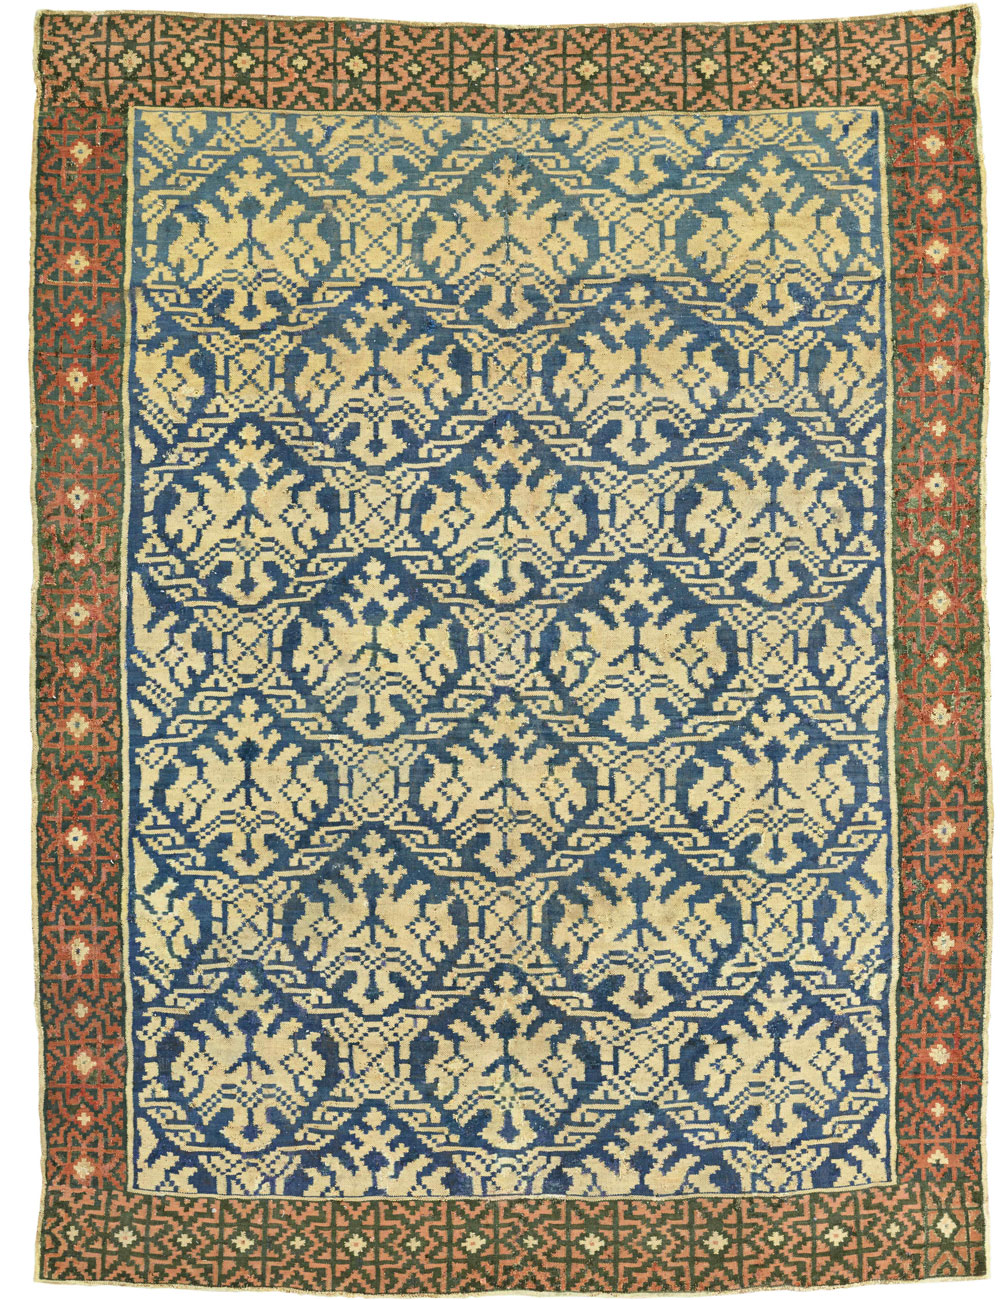 Carpet, Spain, possibly Alcaraz